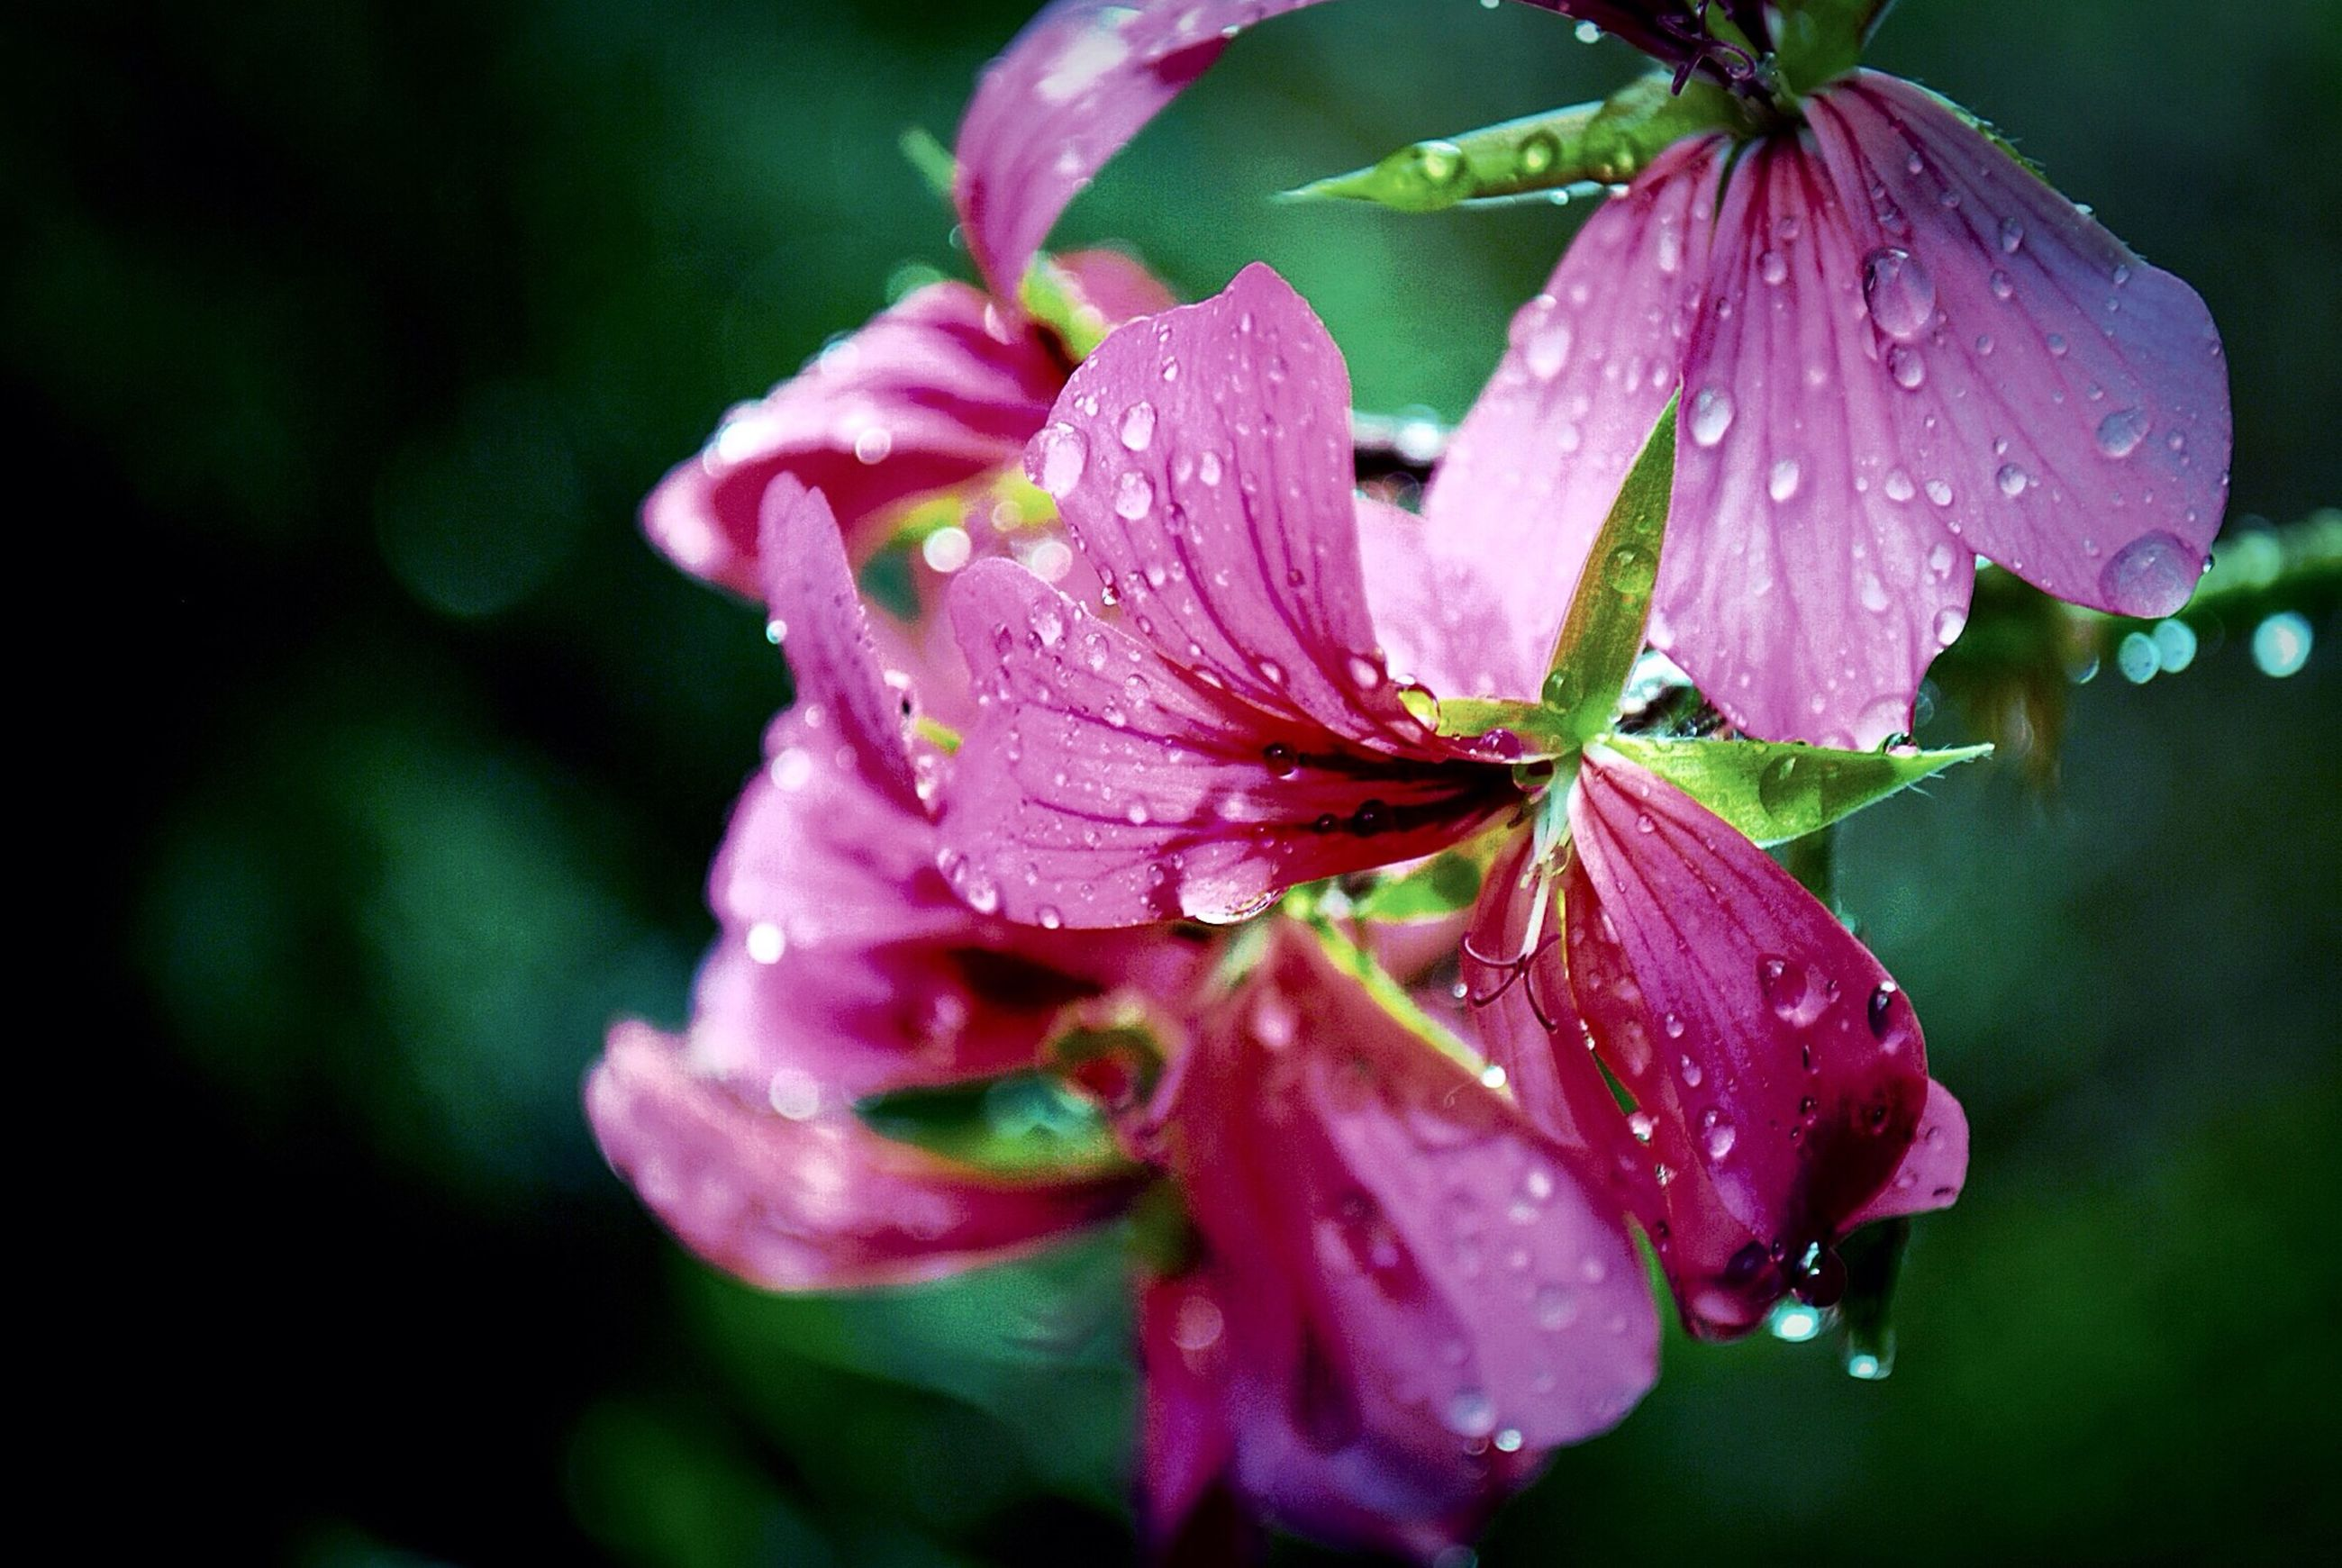 flower, petal, freshness, drop, fragility, water, wet, flower head, close-up, growth, beauty in nature, focus on foreground, dew, nature, raindrop, blooming, pink color, rain, single flower, plant